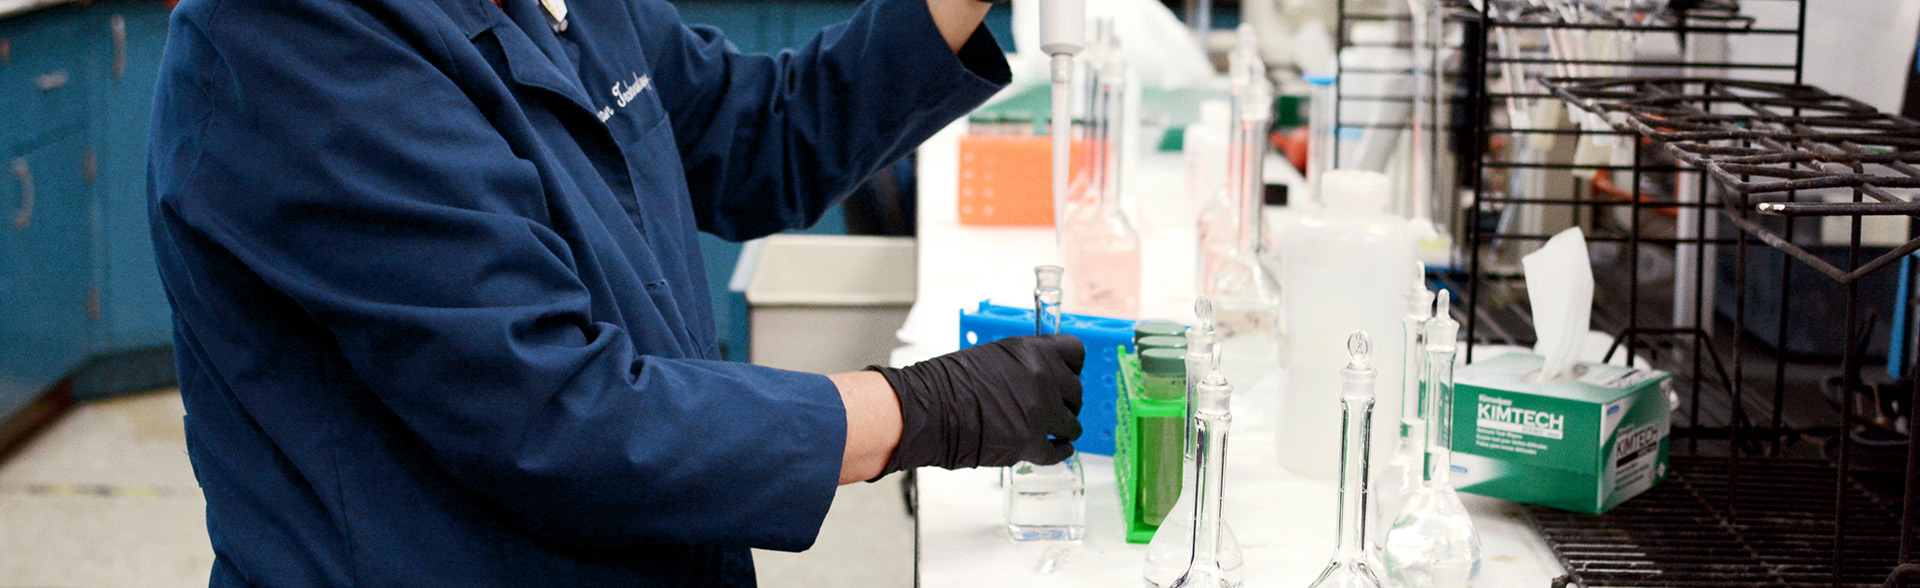 Classical chemical analysis performed by skilled scientists